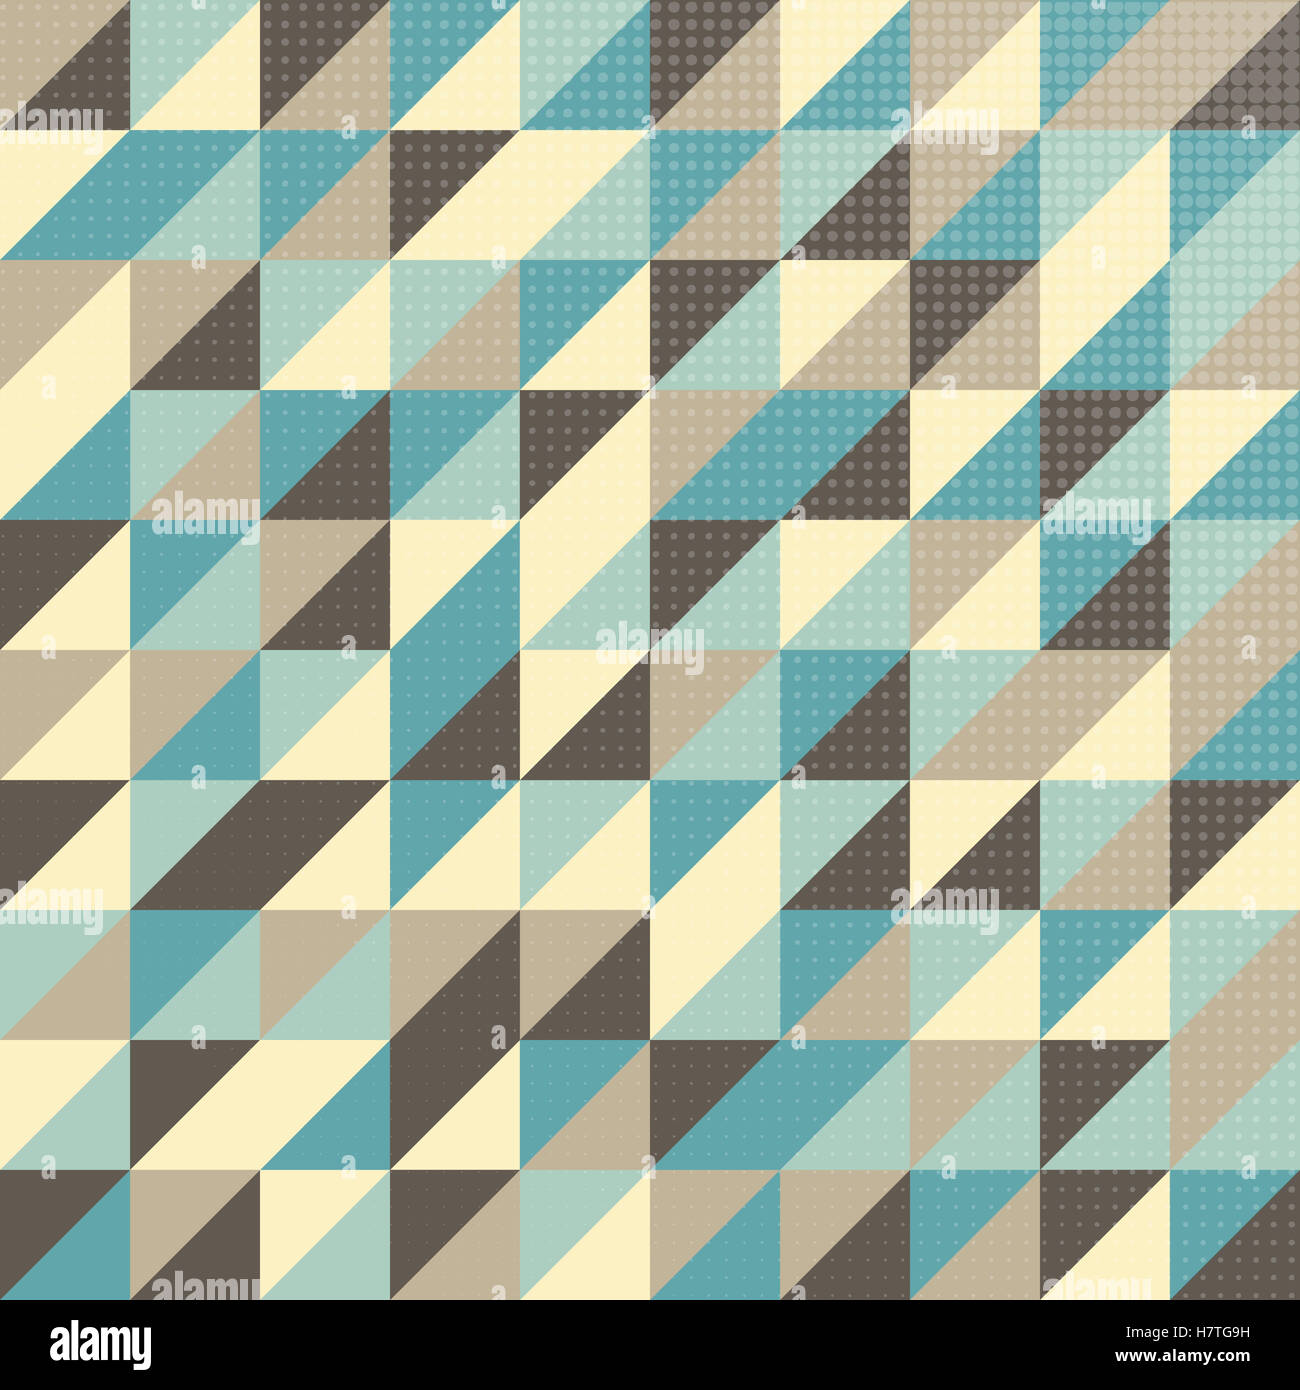 geometric pattern in vintage colors with halftone effect stock photo